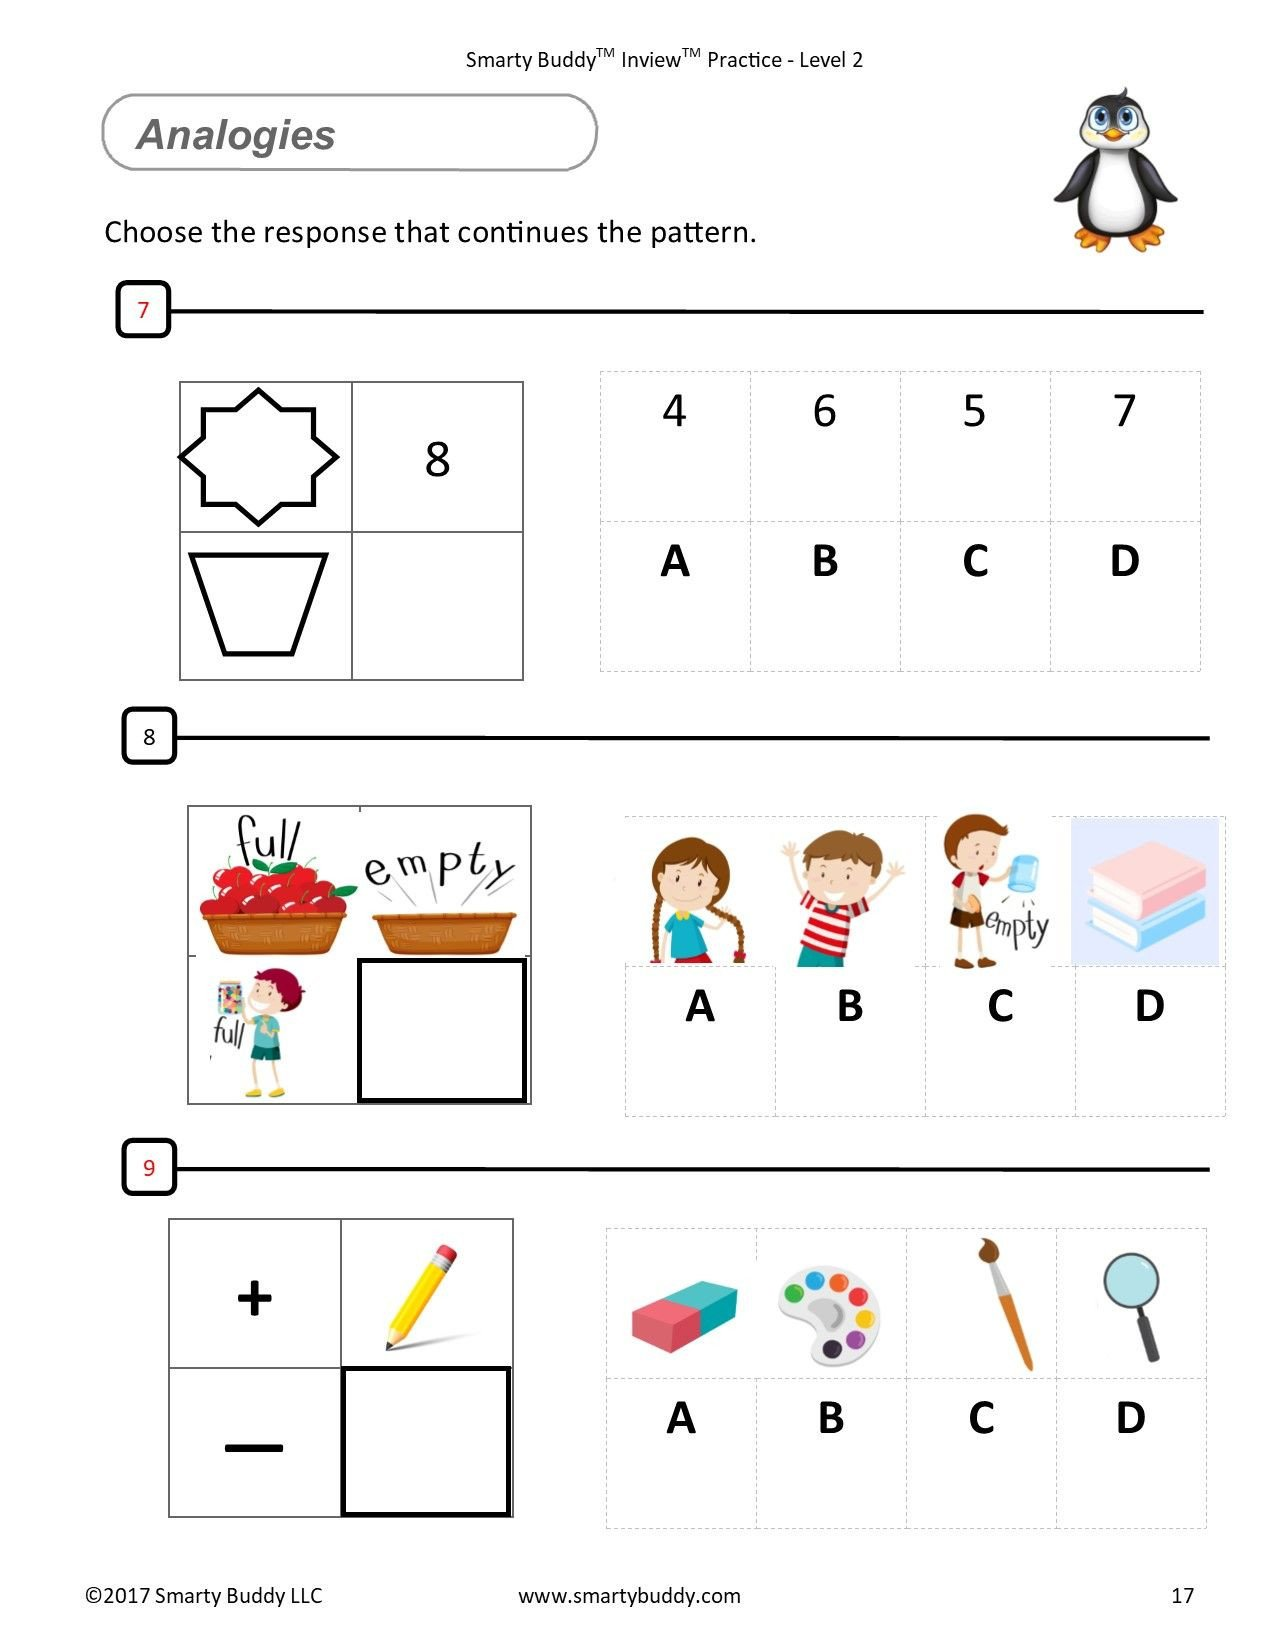 Gifted and Talented Kindergarten Worksheets Smarty Buddy Logic Gifted and Talented Kids Worksheets